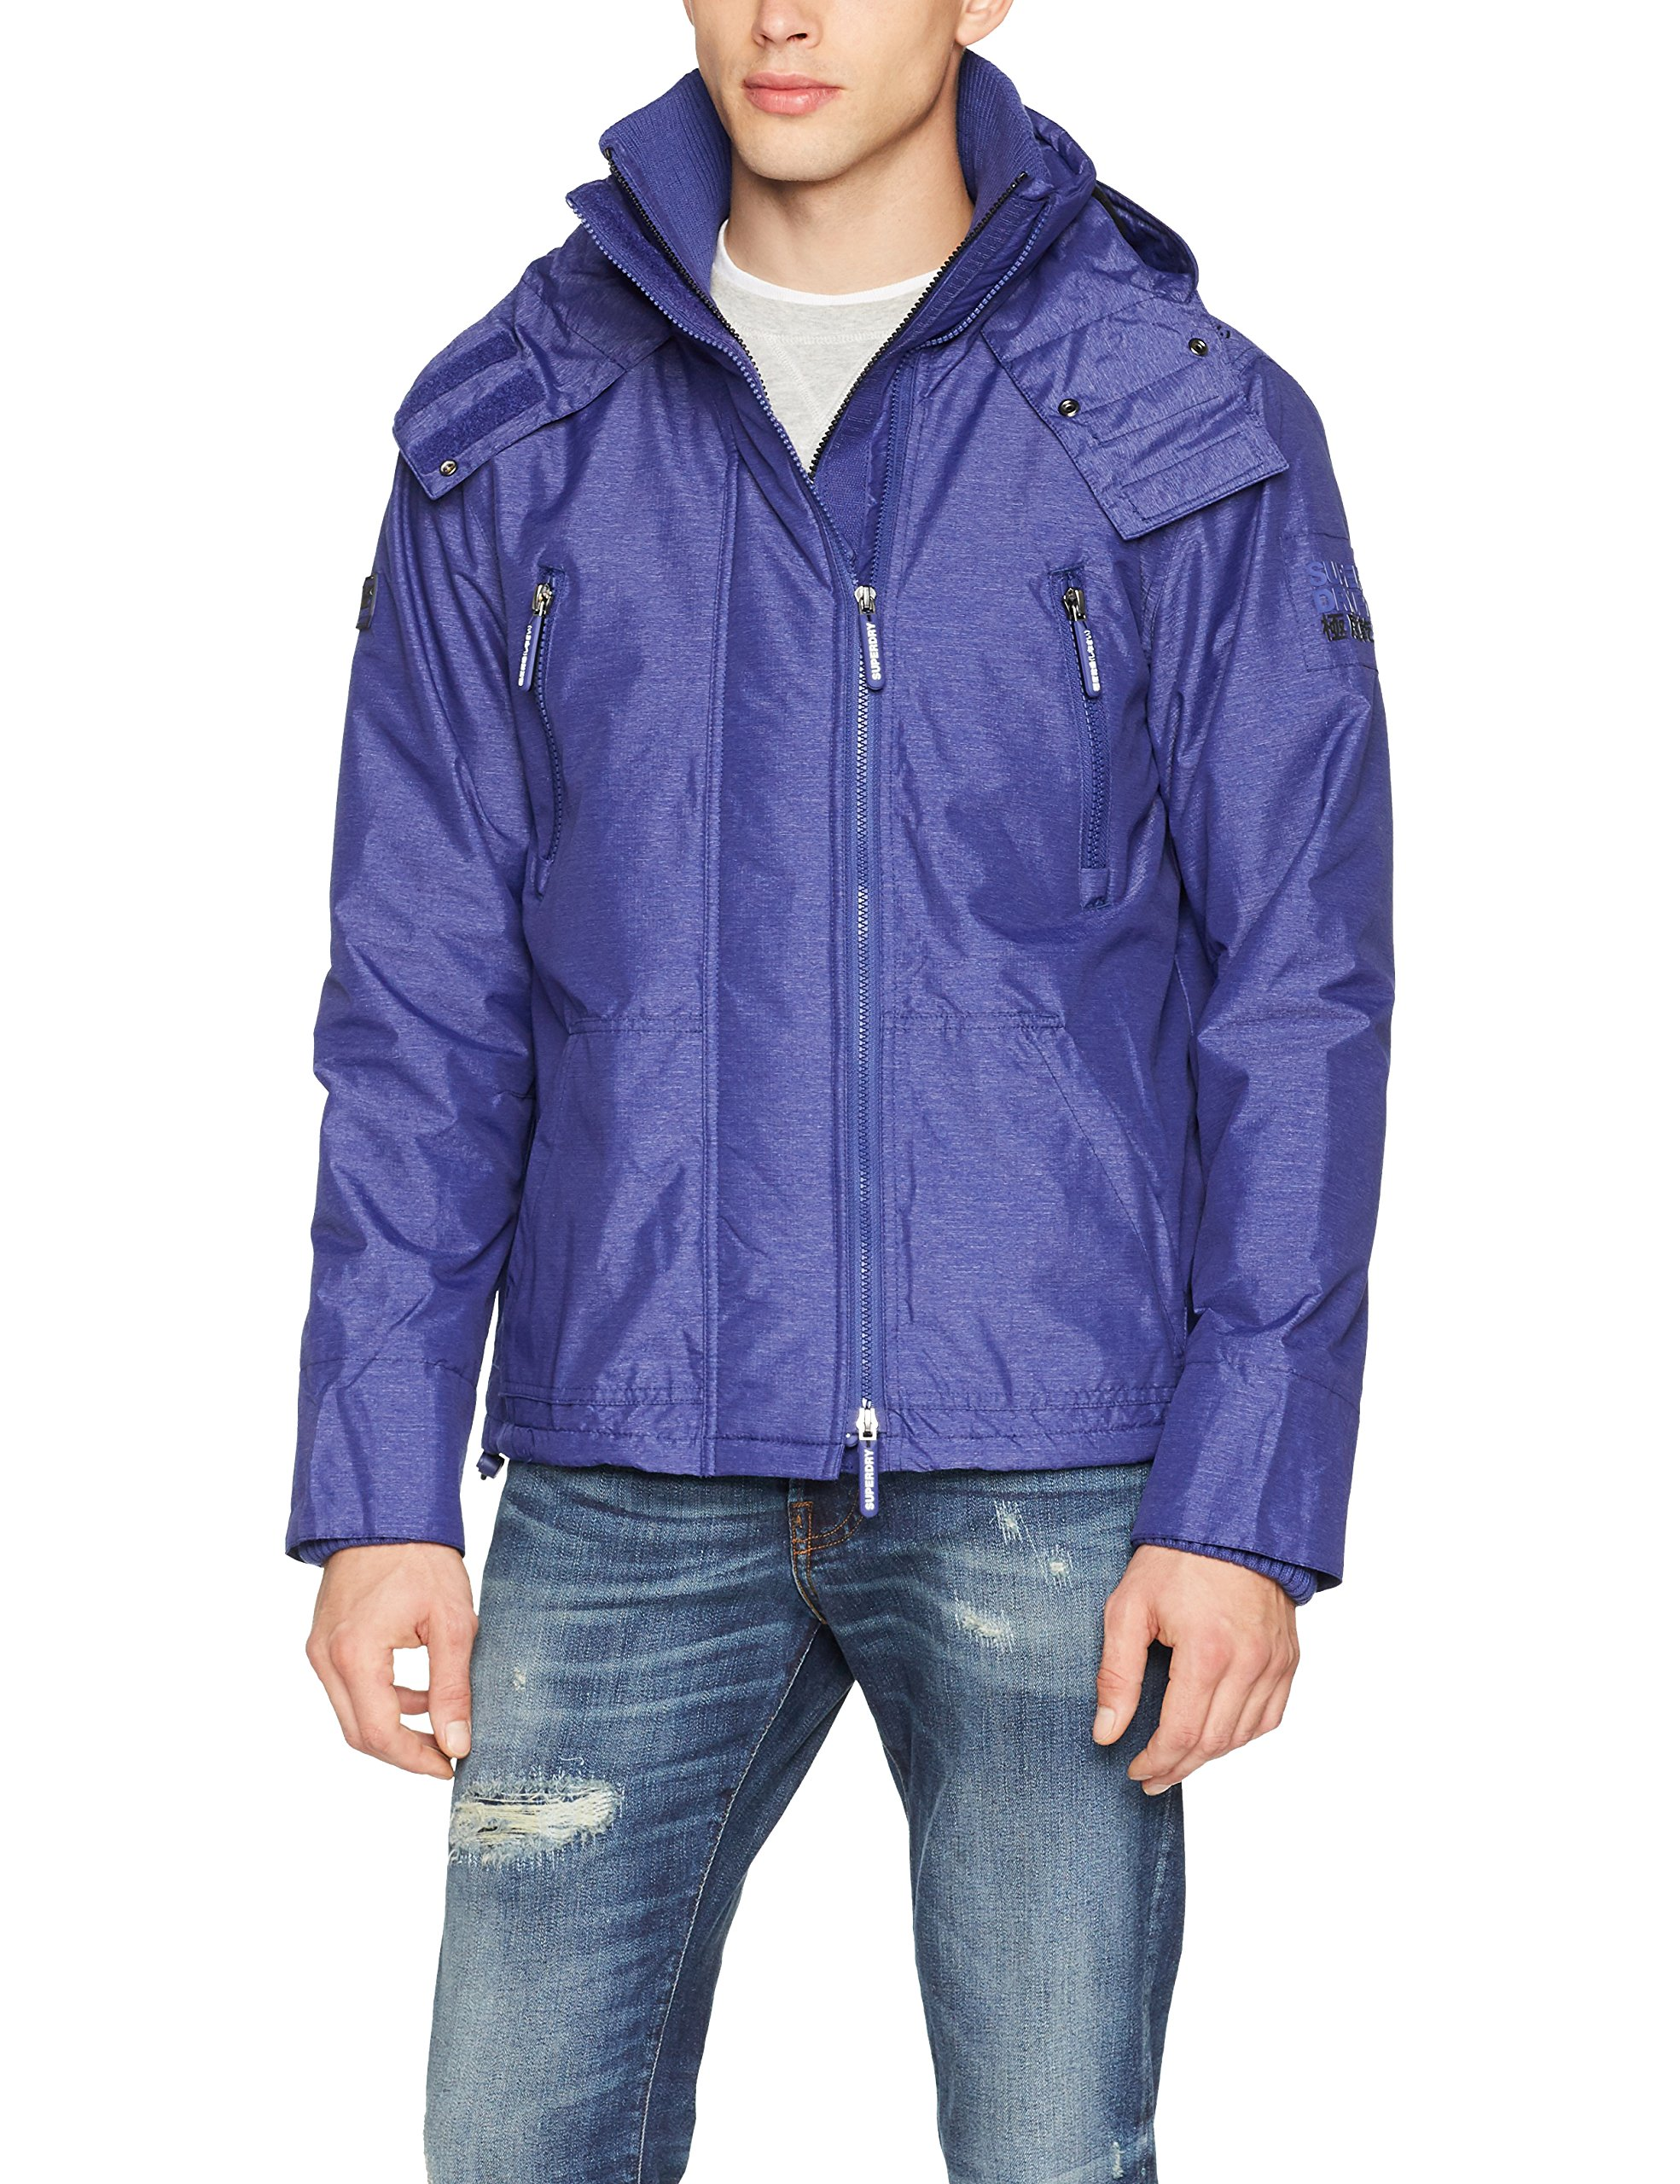 Wind De Homme SportBluroyal blackMedium Superdry Attacker Hooded Veste Marl Nkn0P8wOXZ